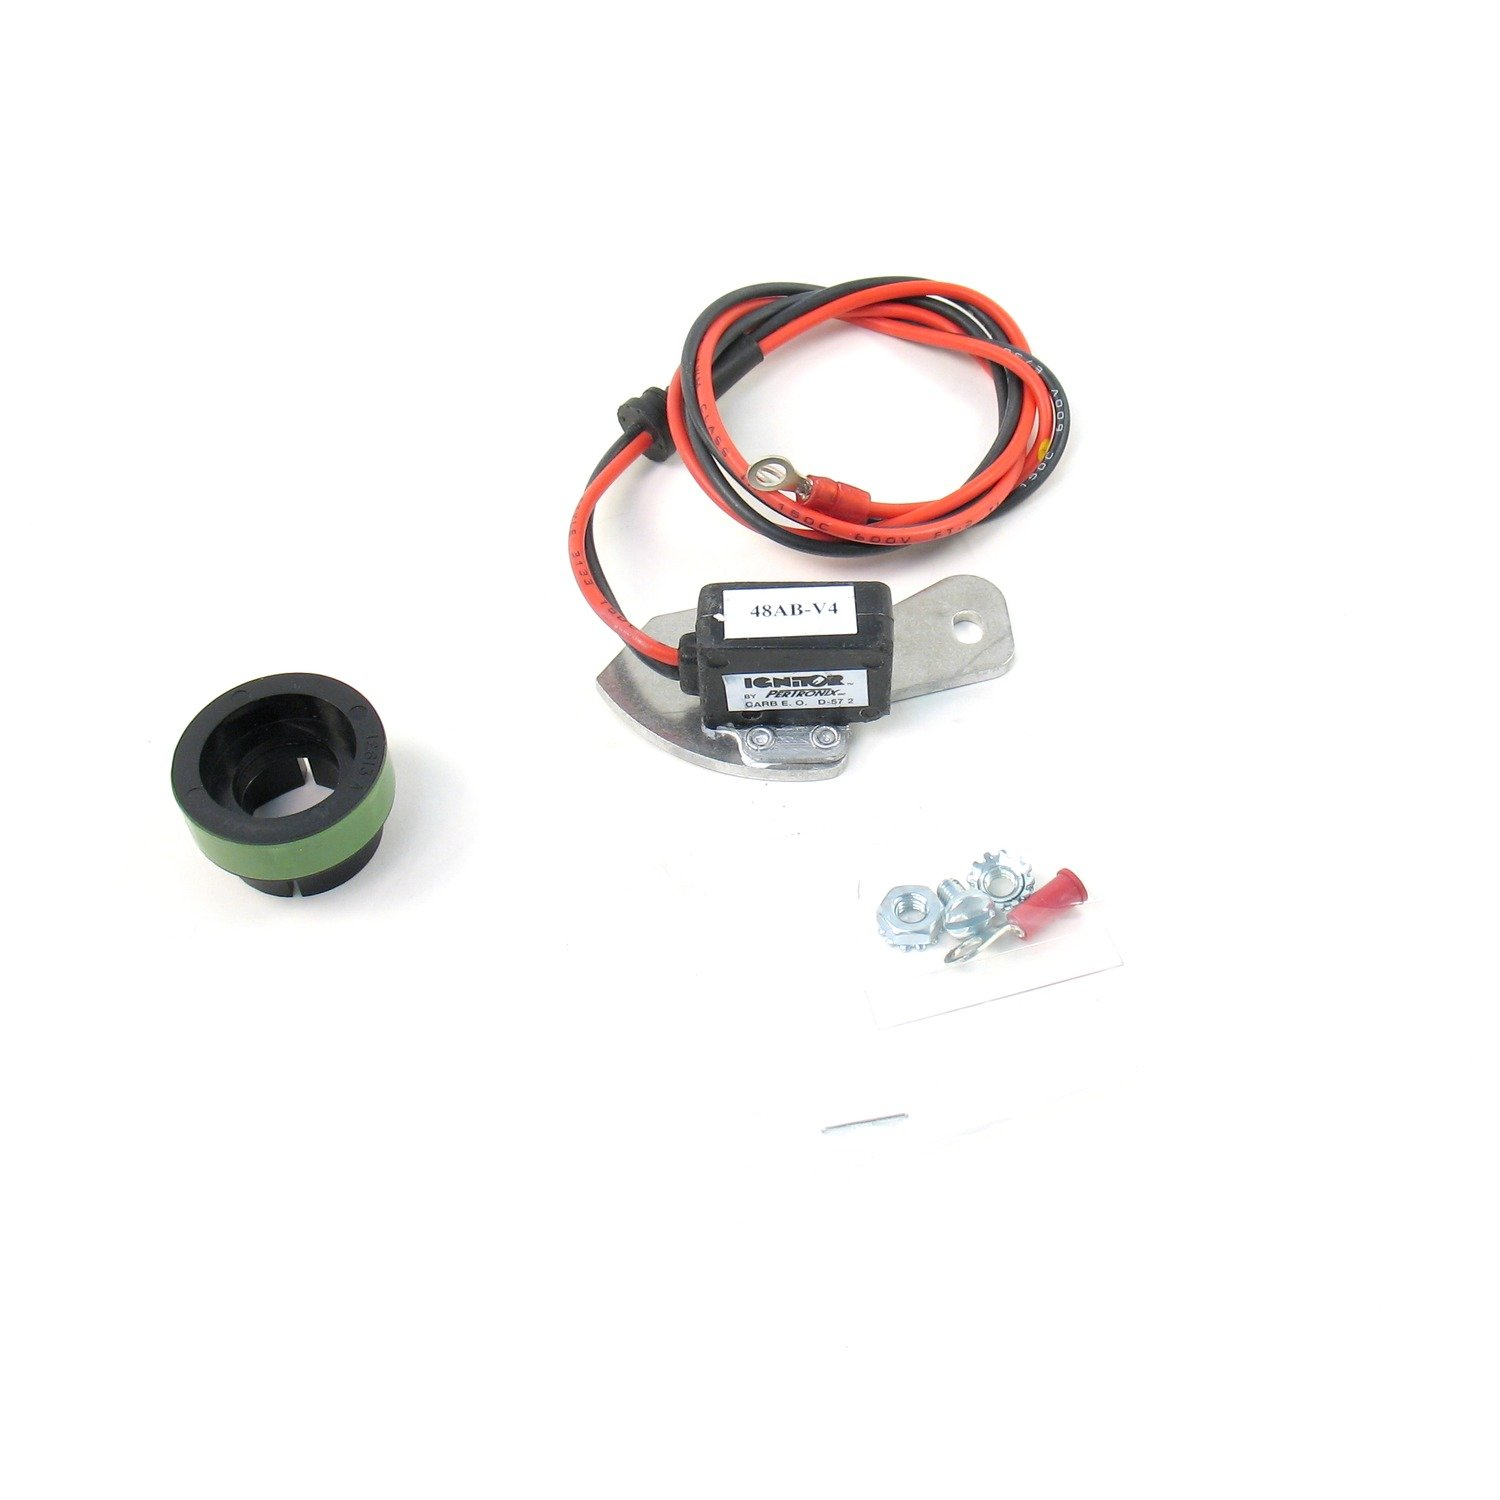 PerTronix 1261 Ignitor for Ford 6 Cylinder by Pertronix